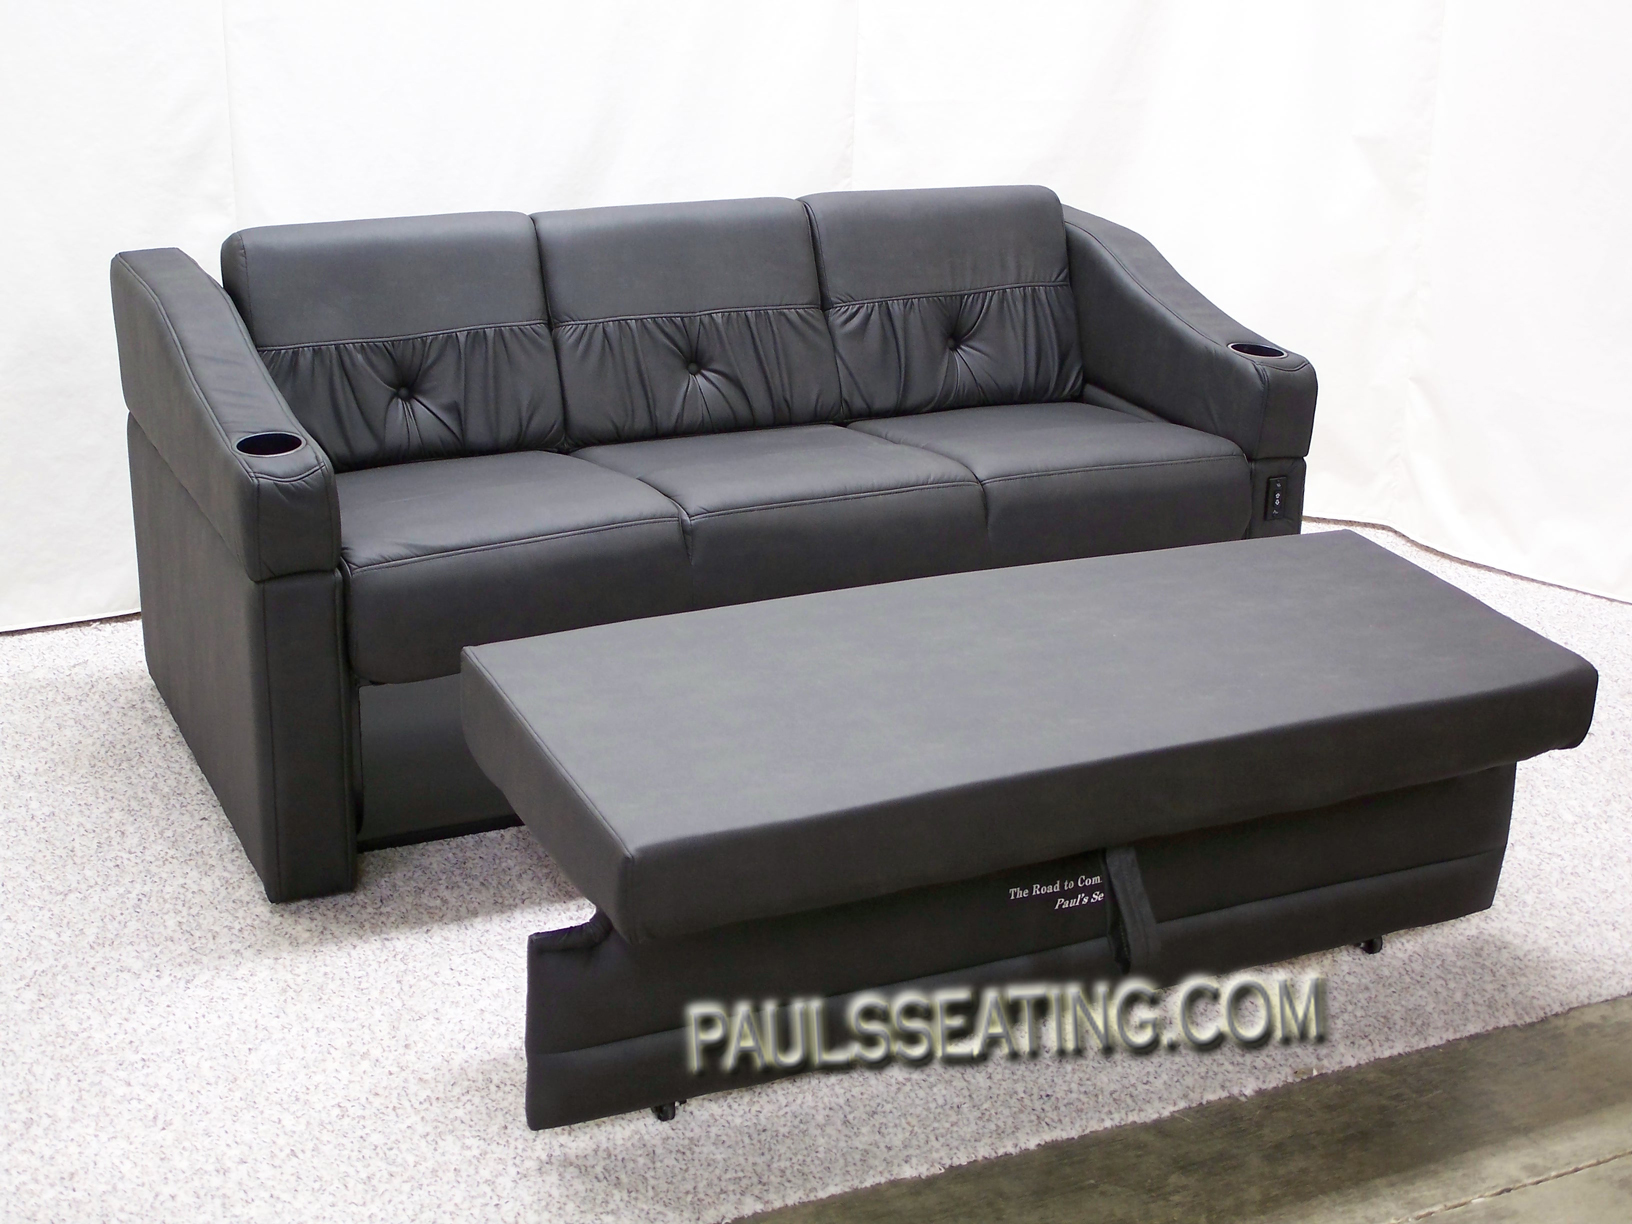 Elite Power sofa w- ottoman out.JPG